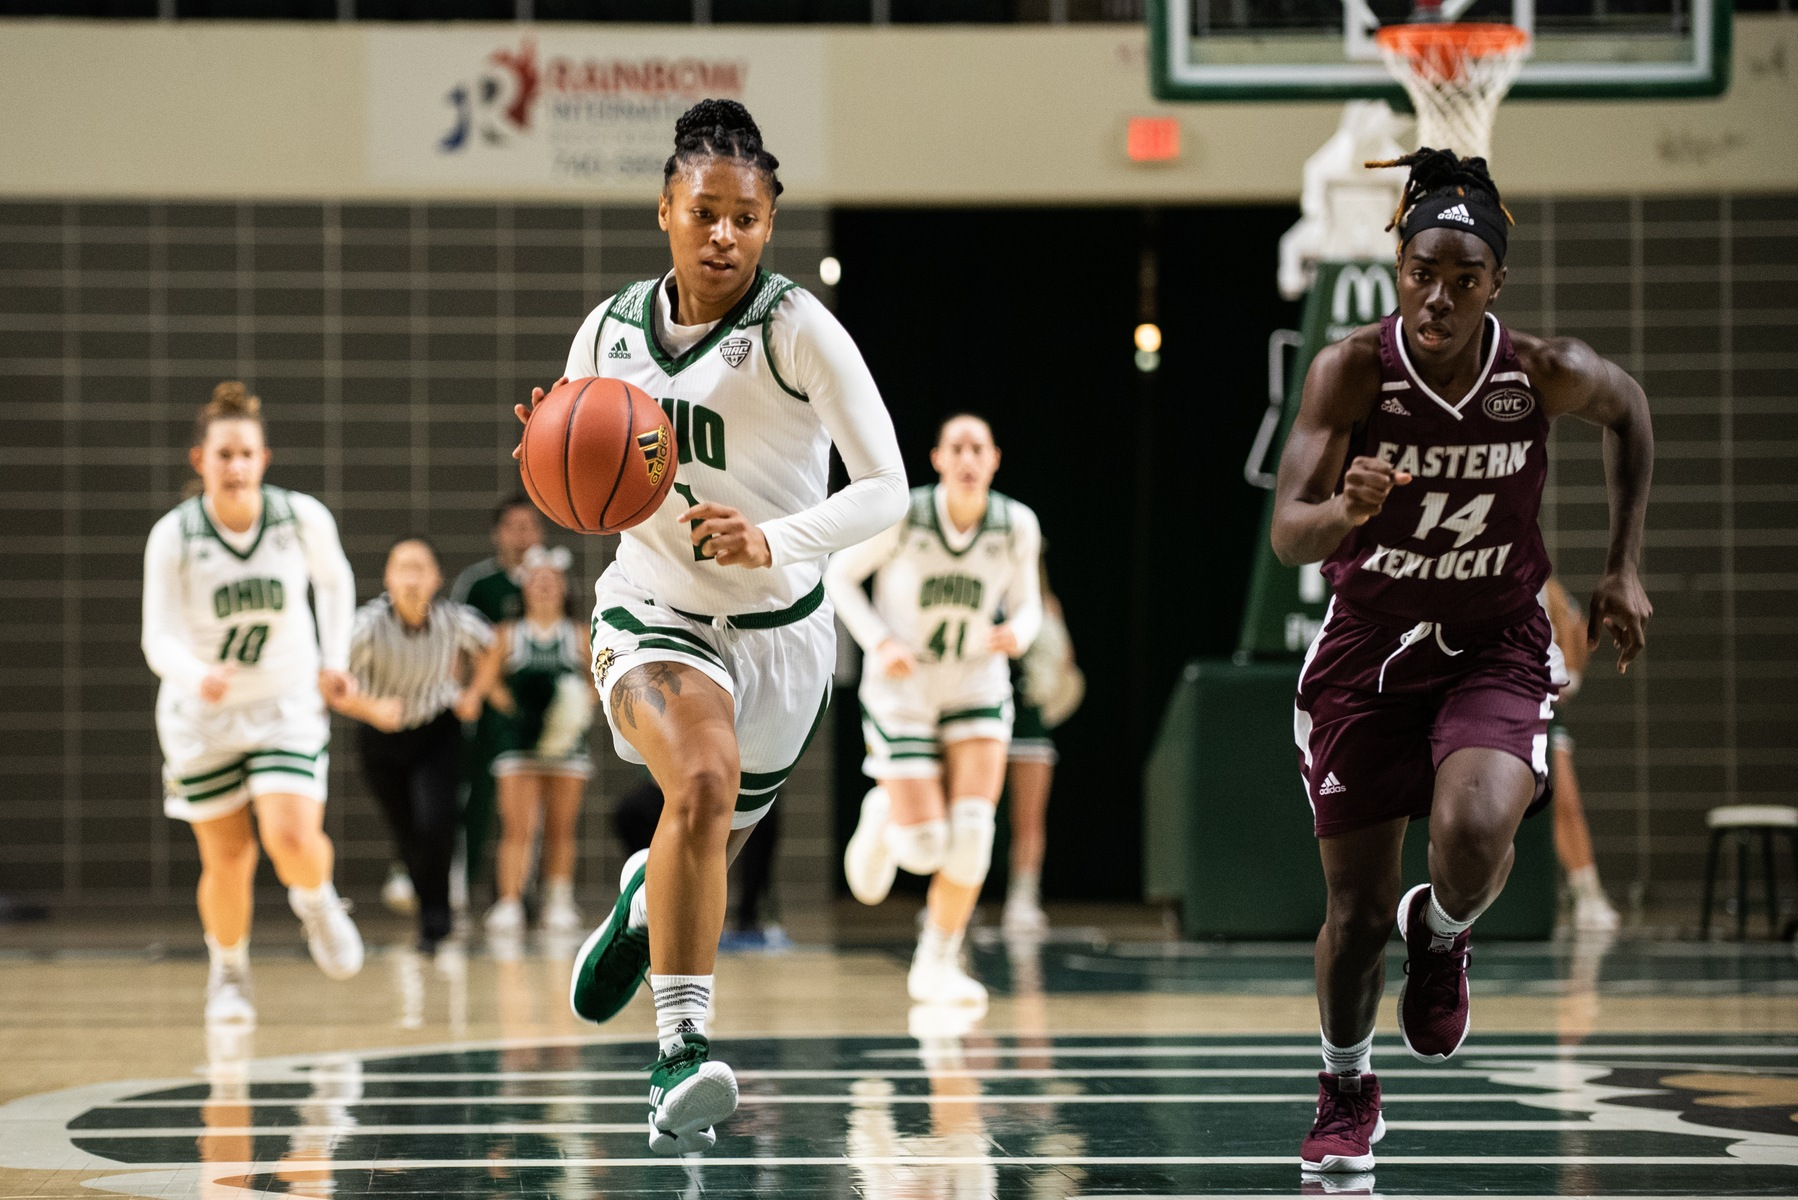 Ohio Women's Basketball Takes Down Buffalo in Overtime